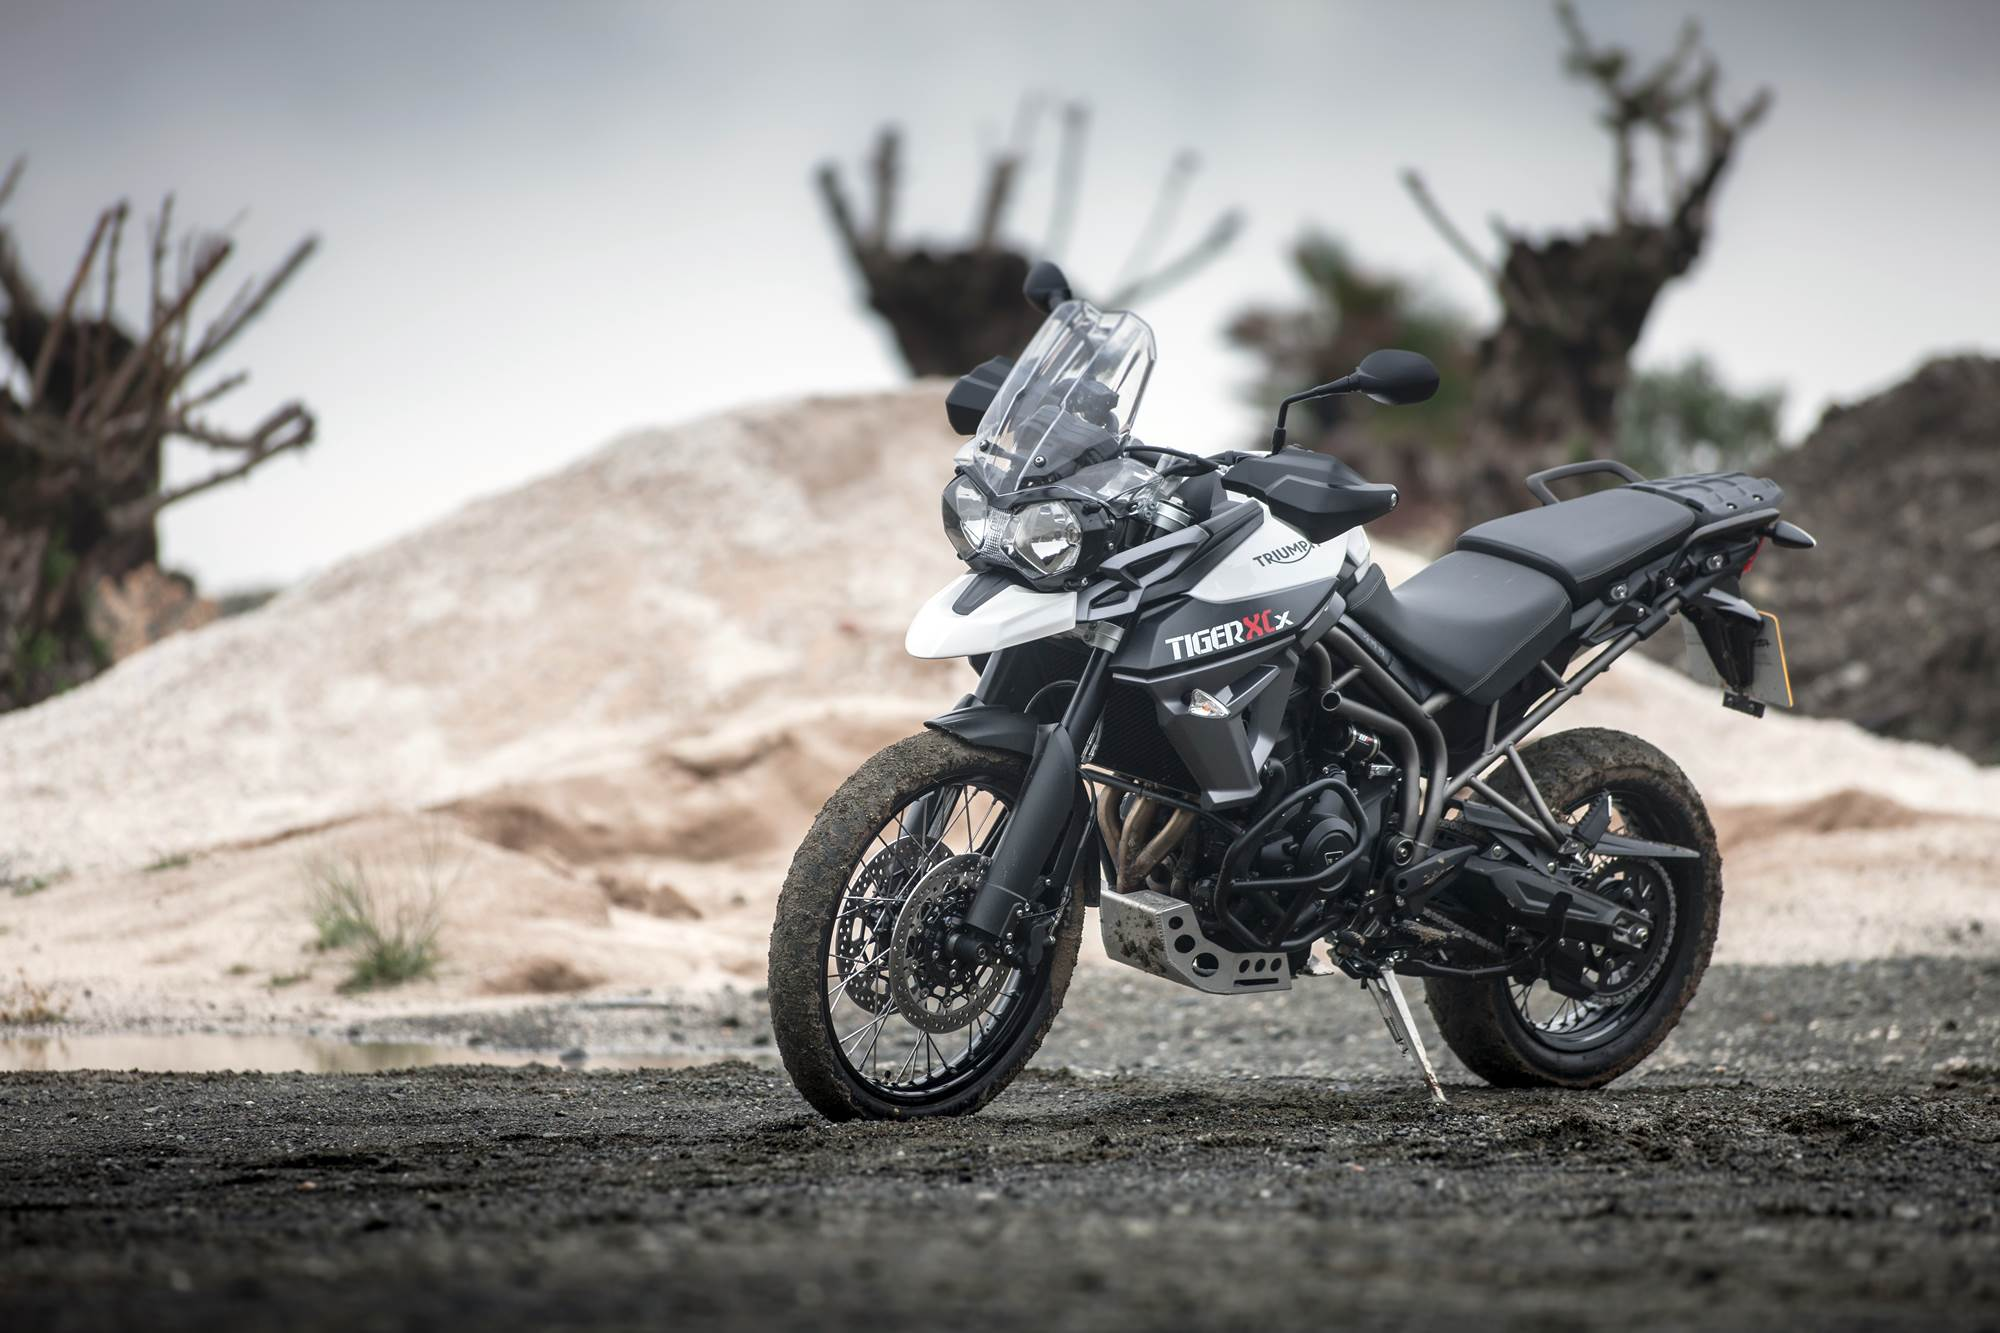 2015 Triumph Tiger 800 XCx static